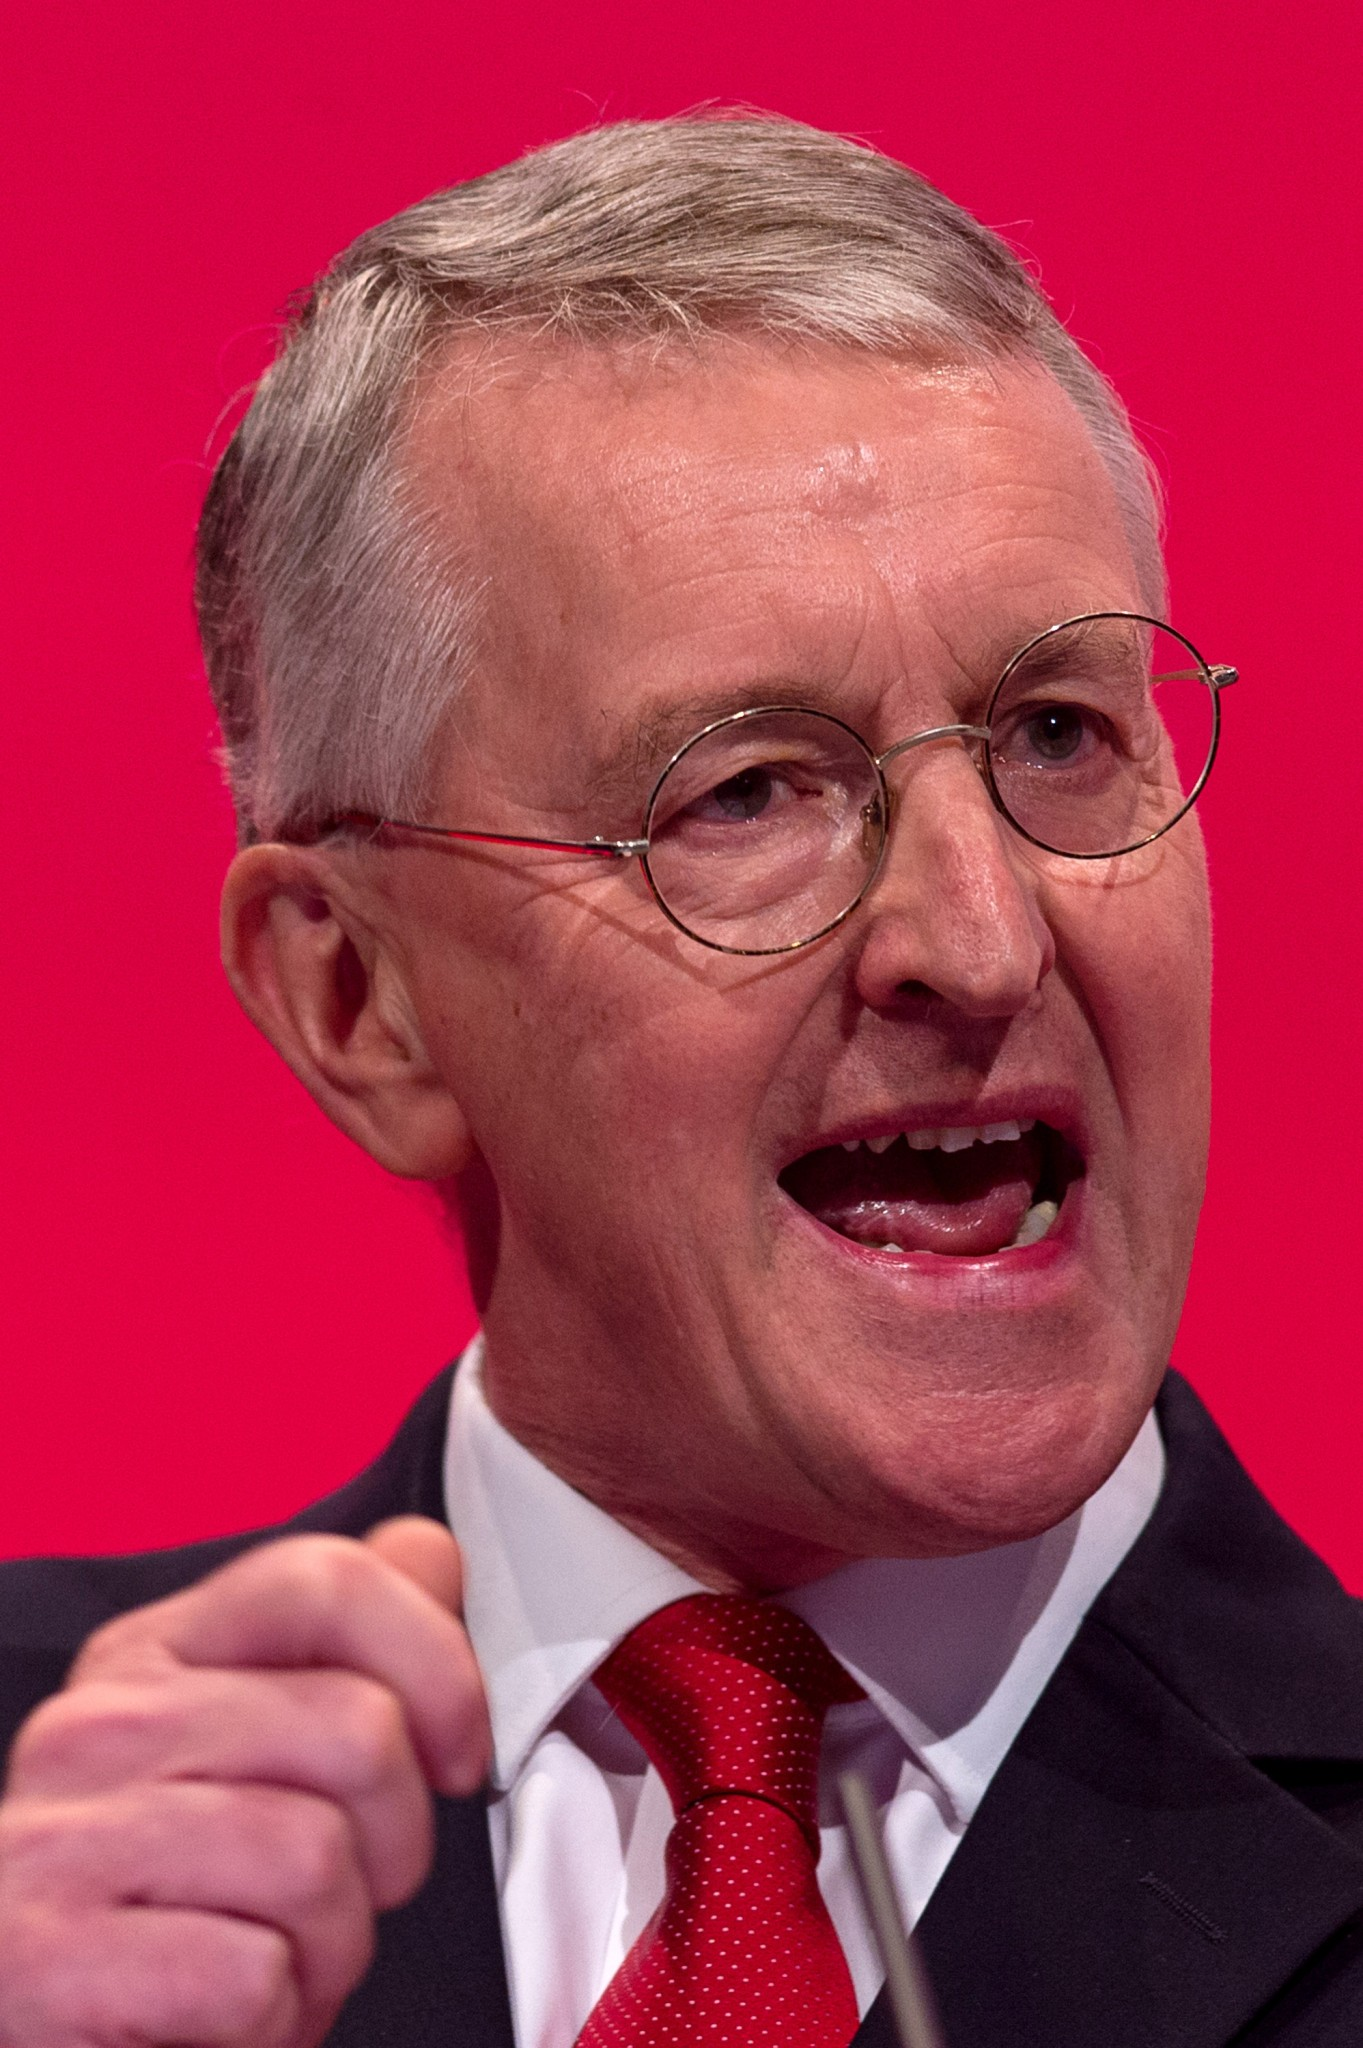 Hilary Benn, possibly the man to unite Labour